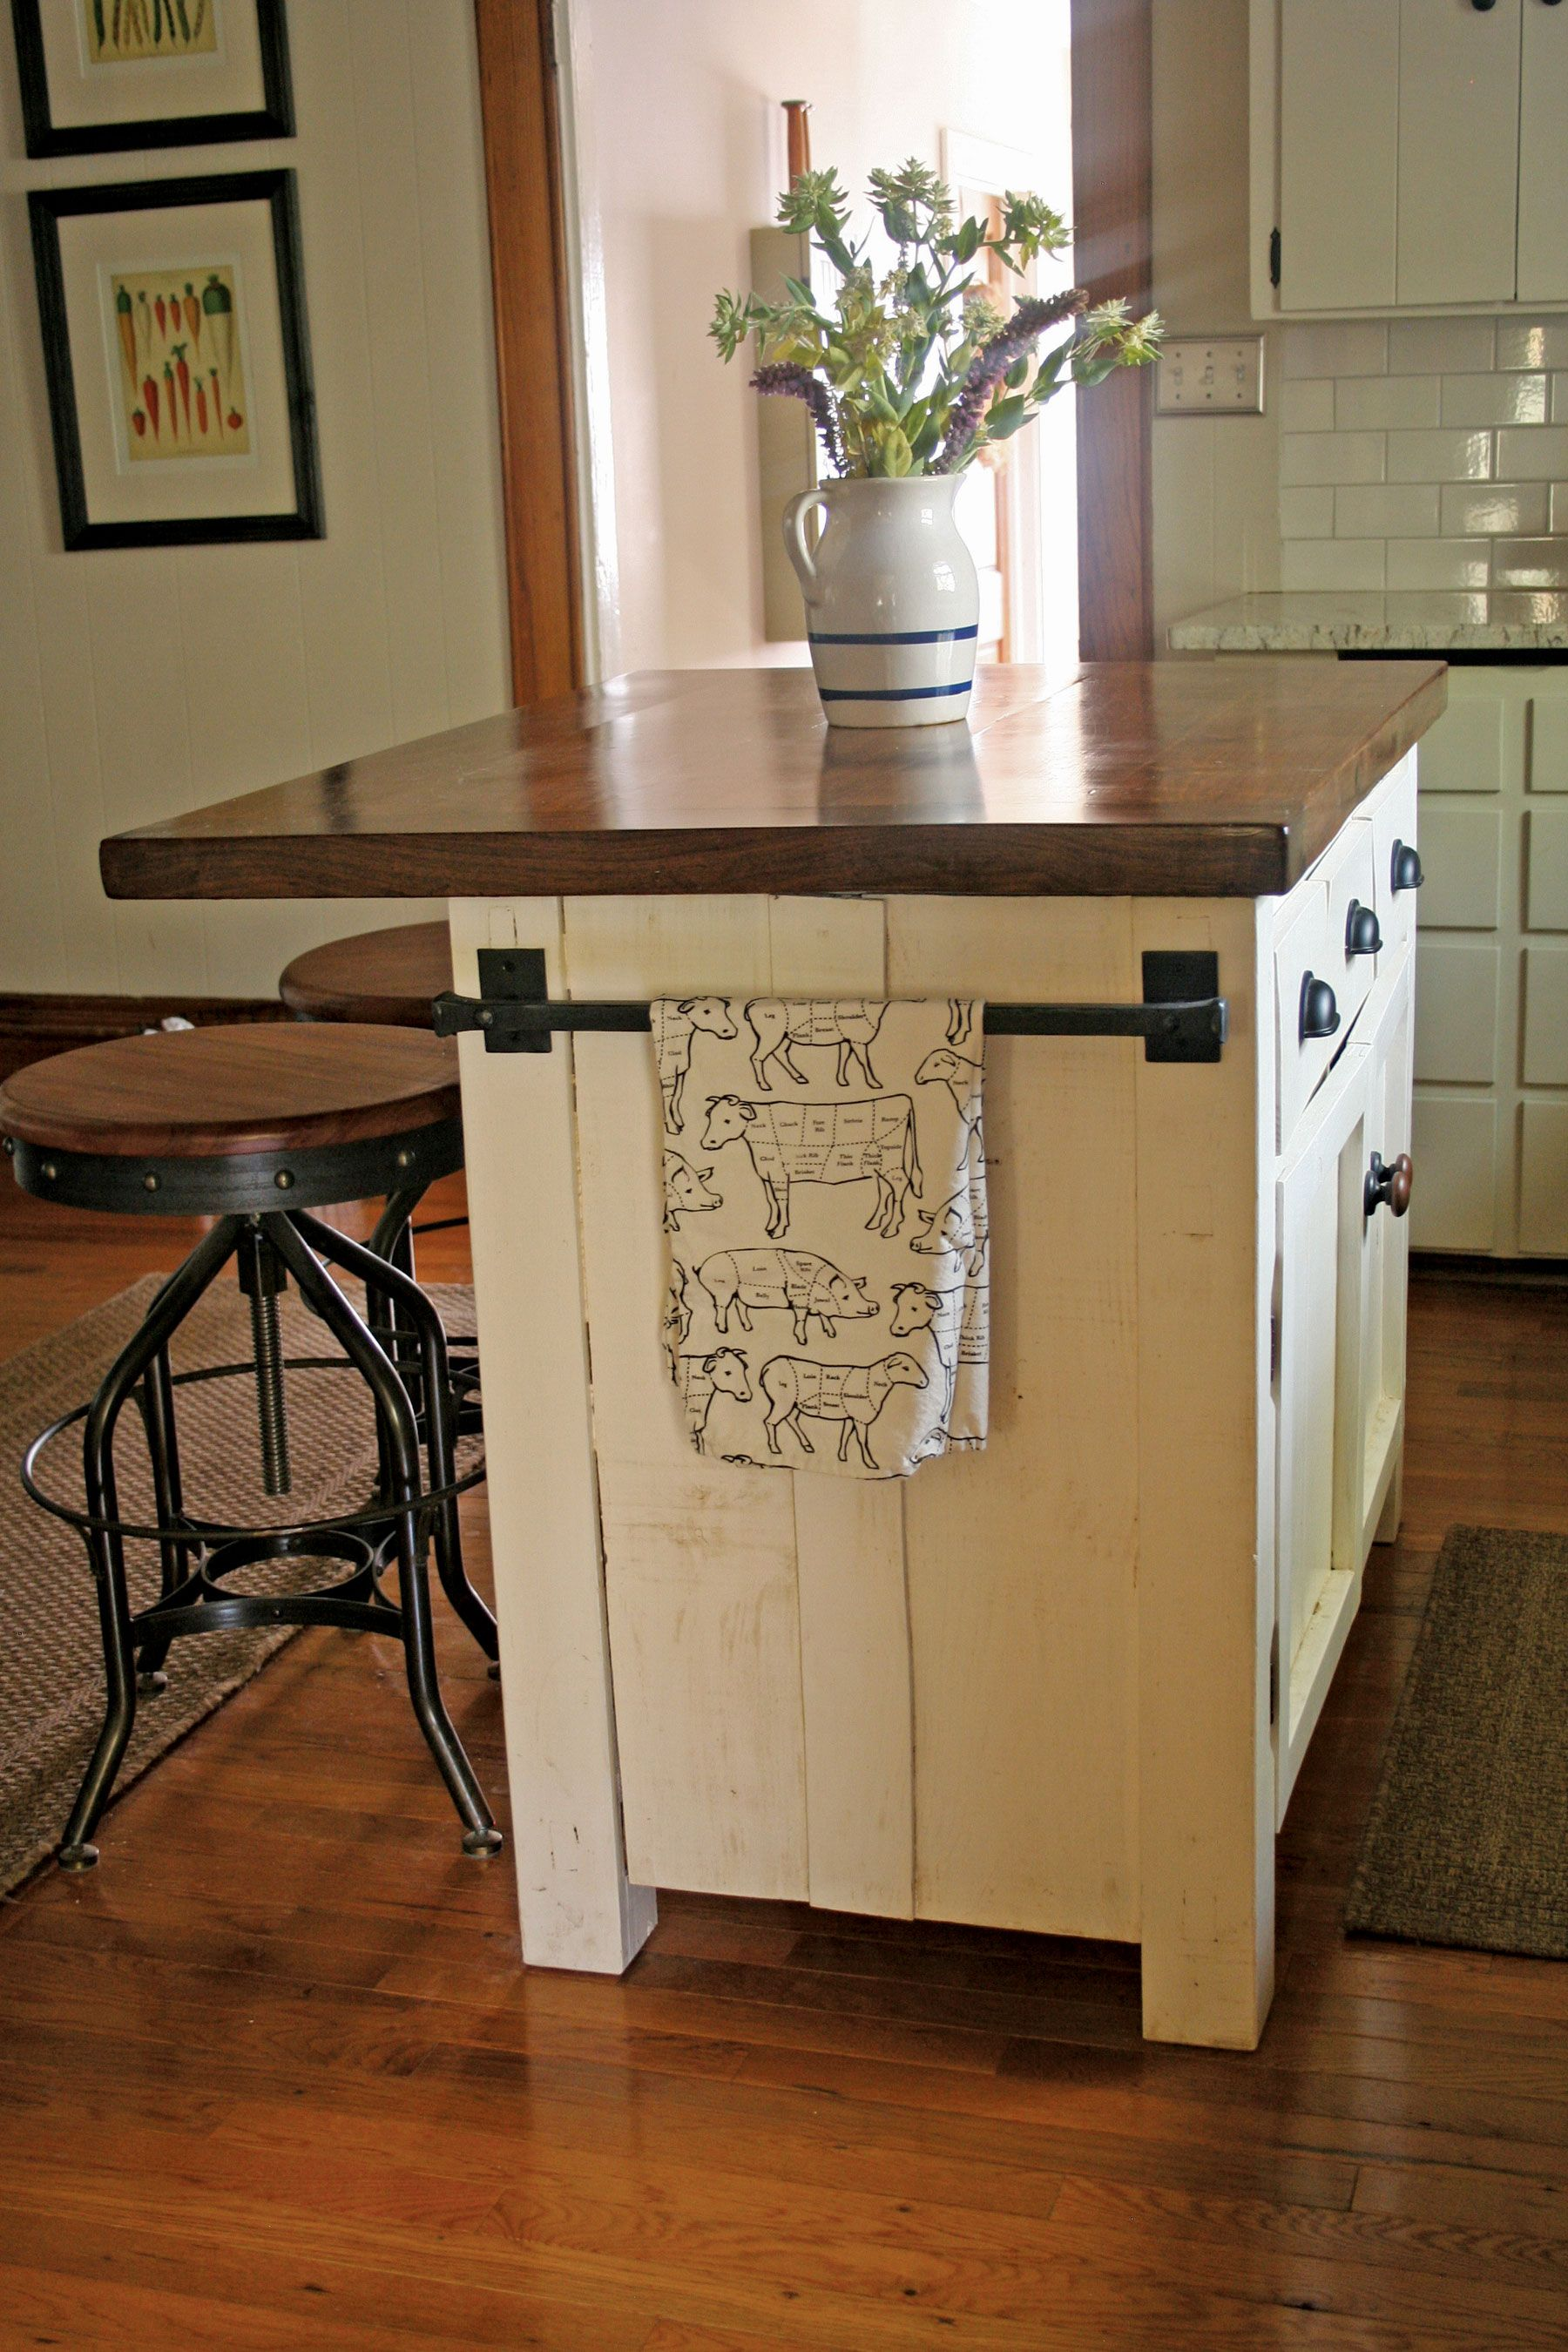 Diy Kitchen Island do it yourself kitchen island | home lumber mill: crafting